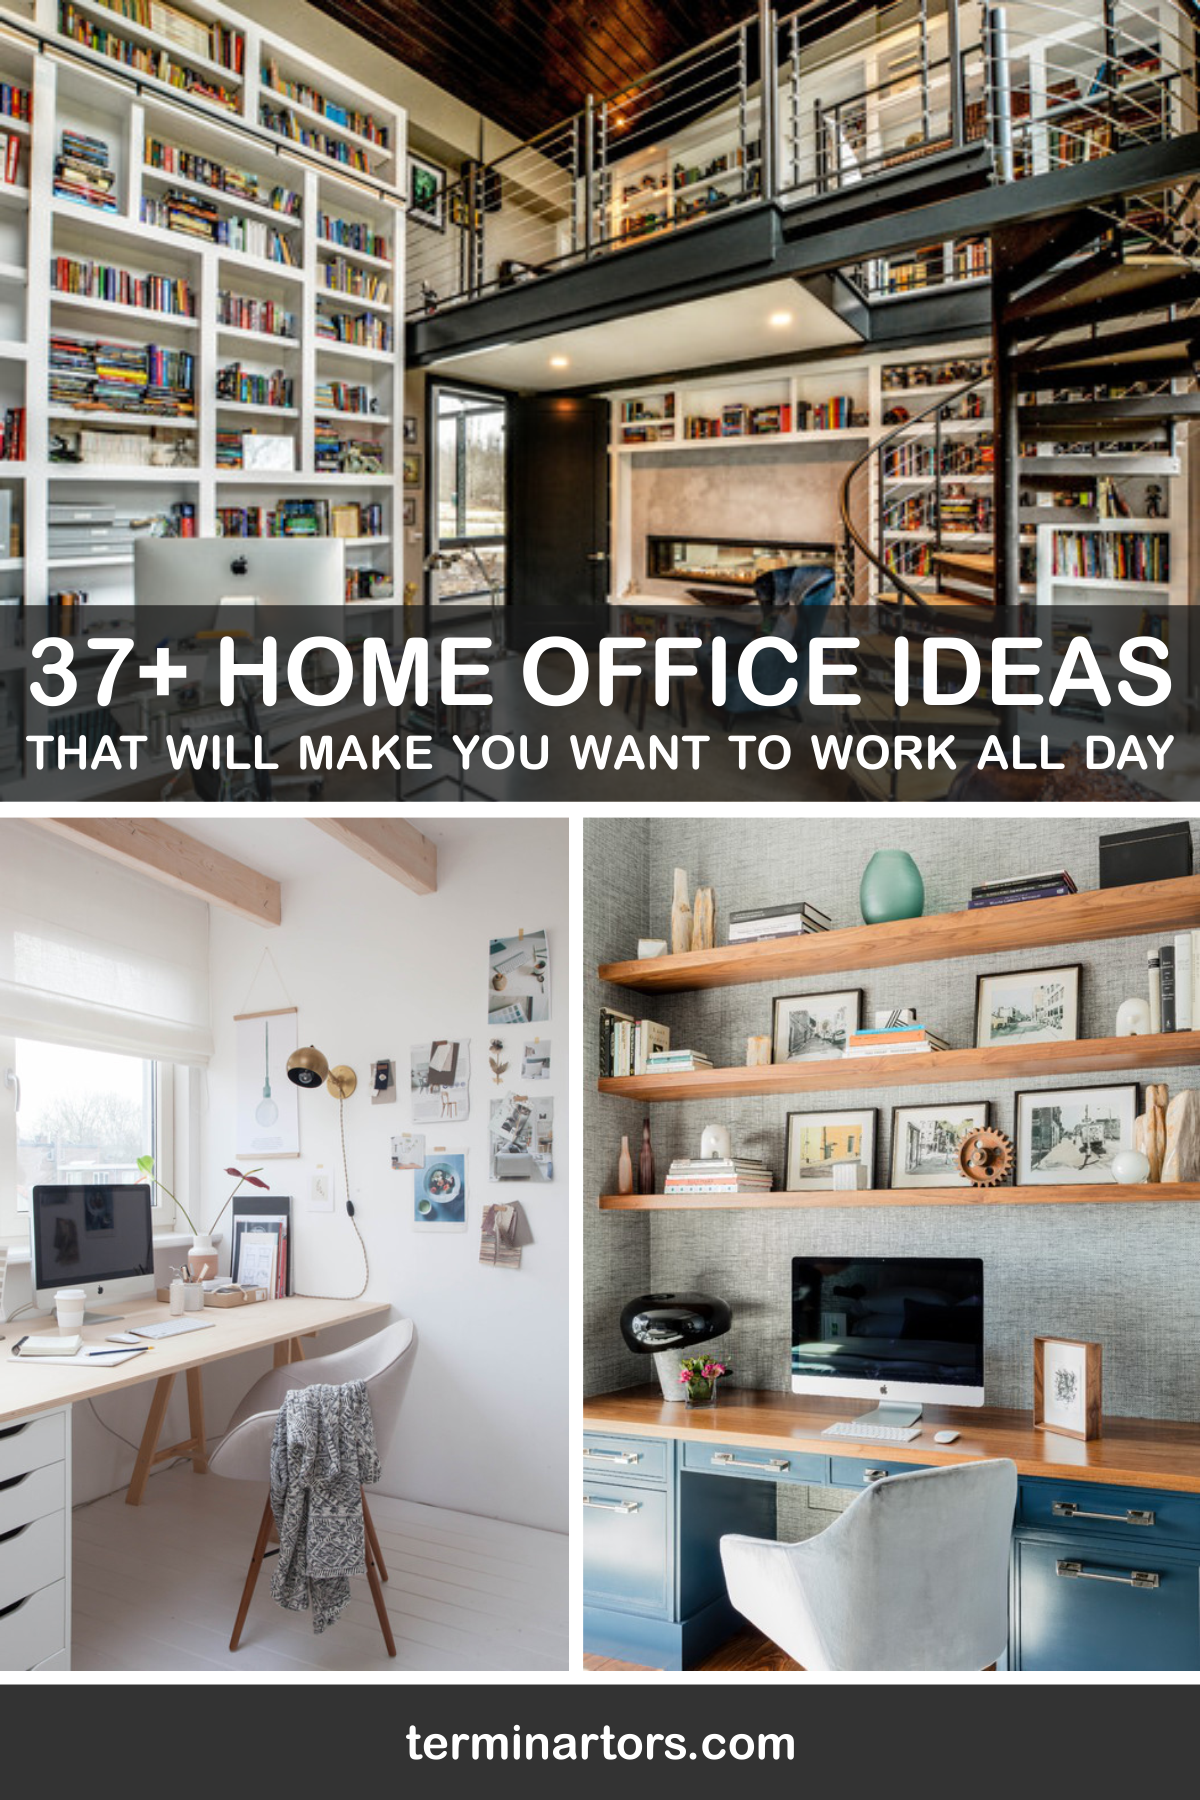 Working from home has become more than a trend here are 37 home office gorgeous ideas that will make you wanna work all day